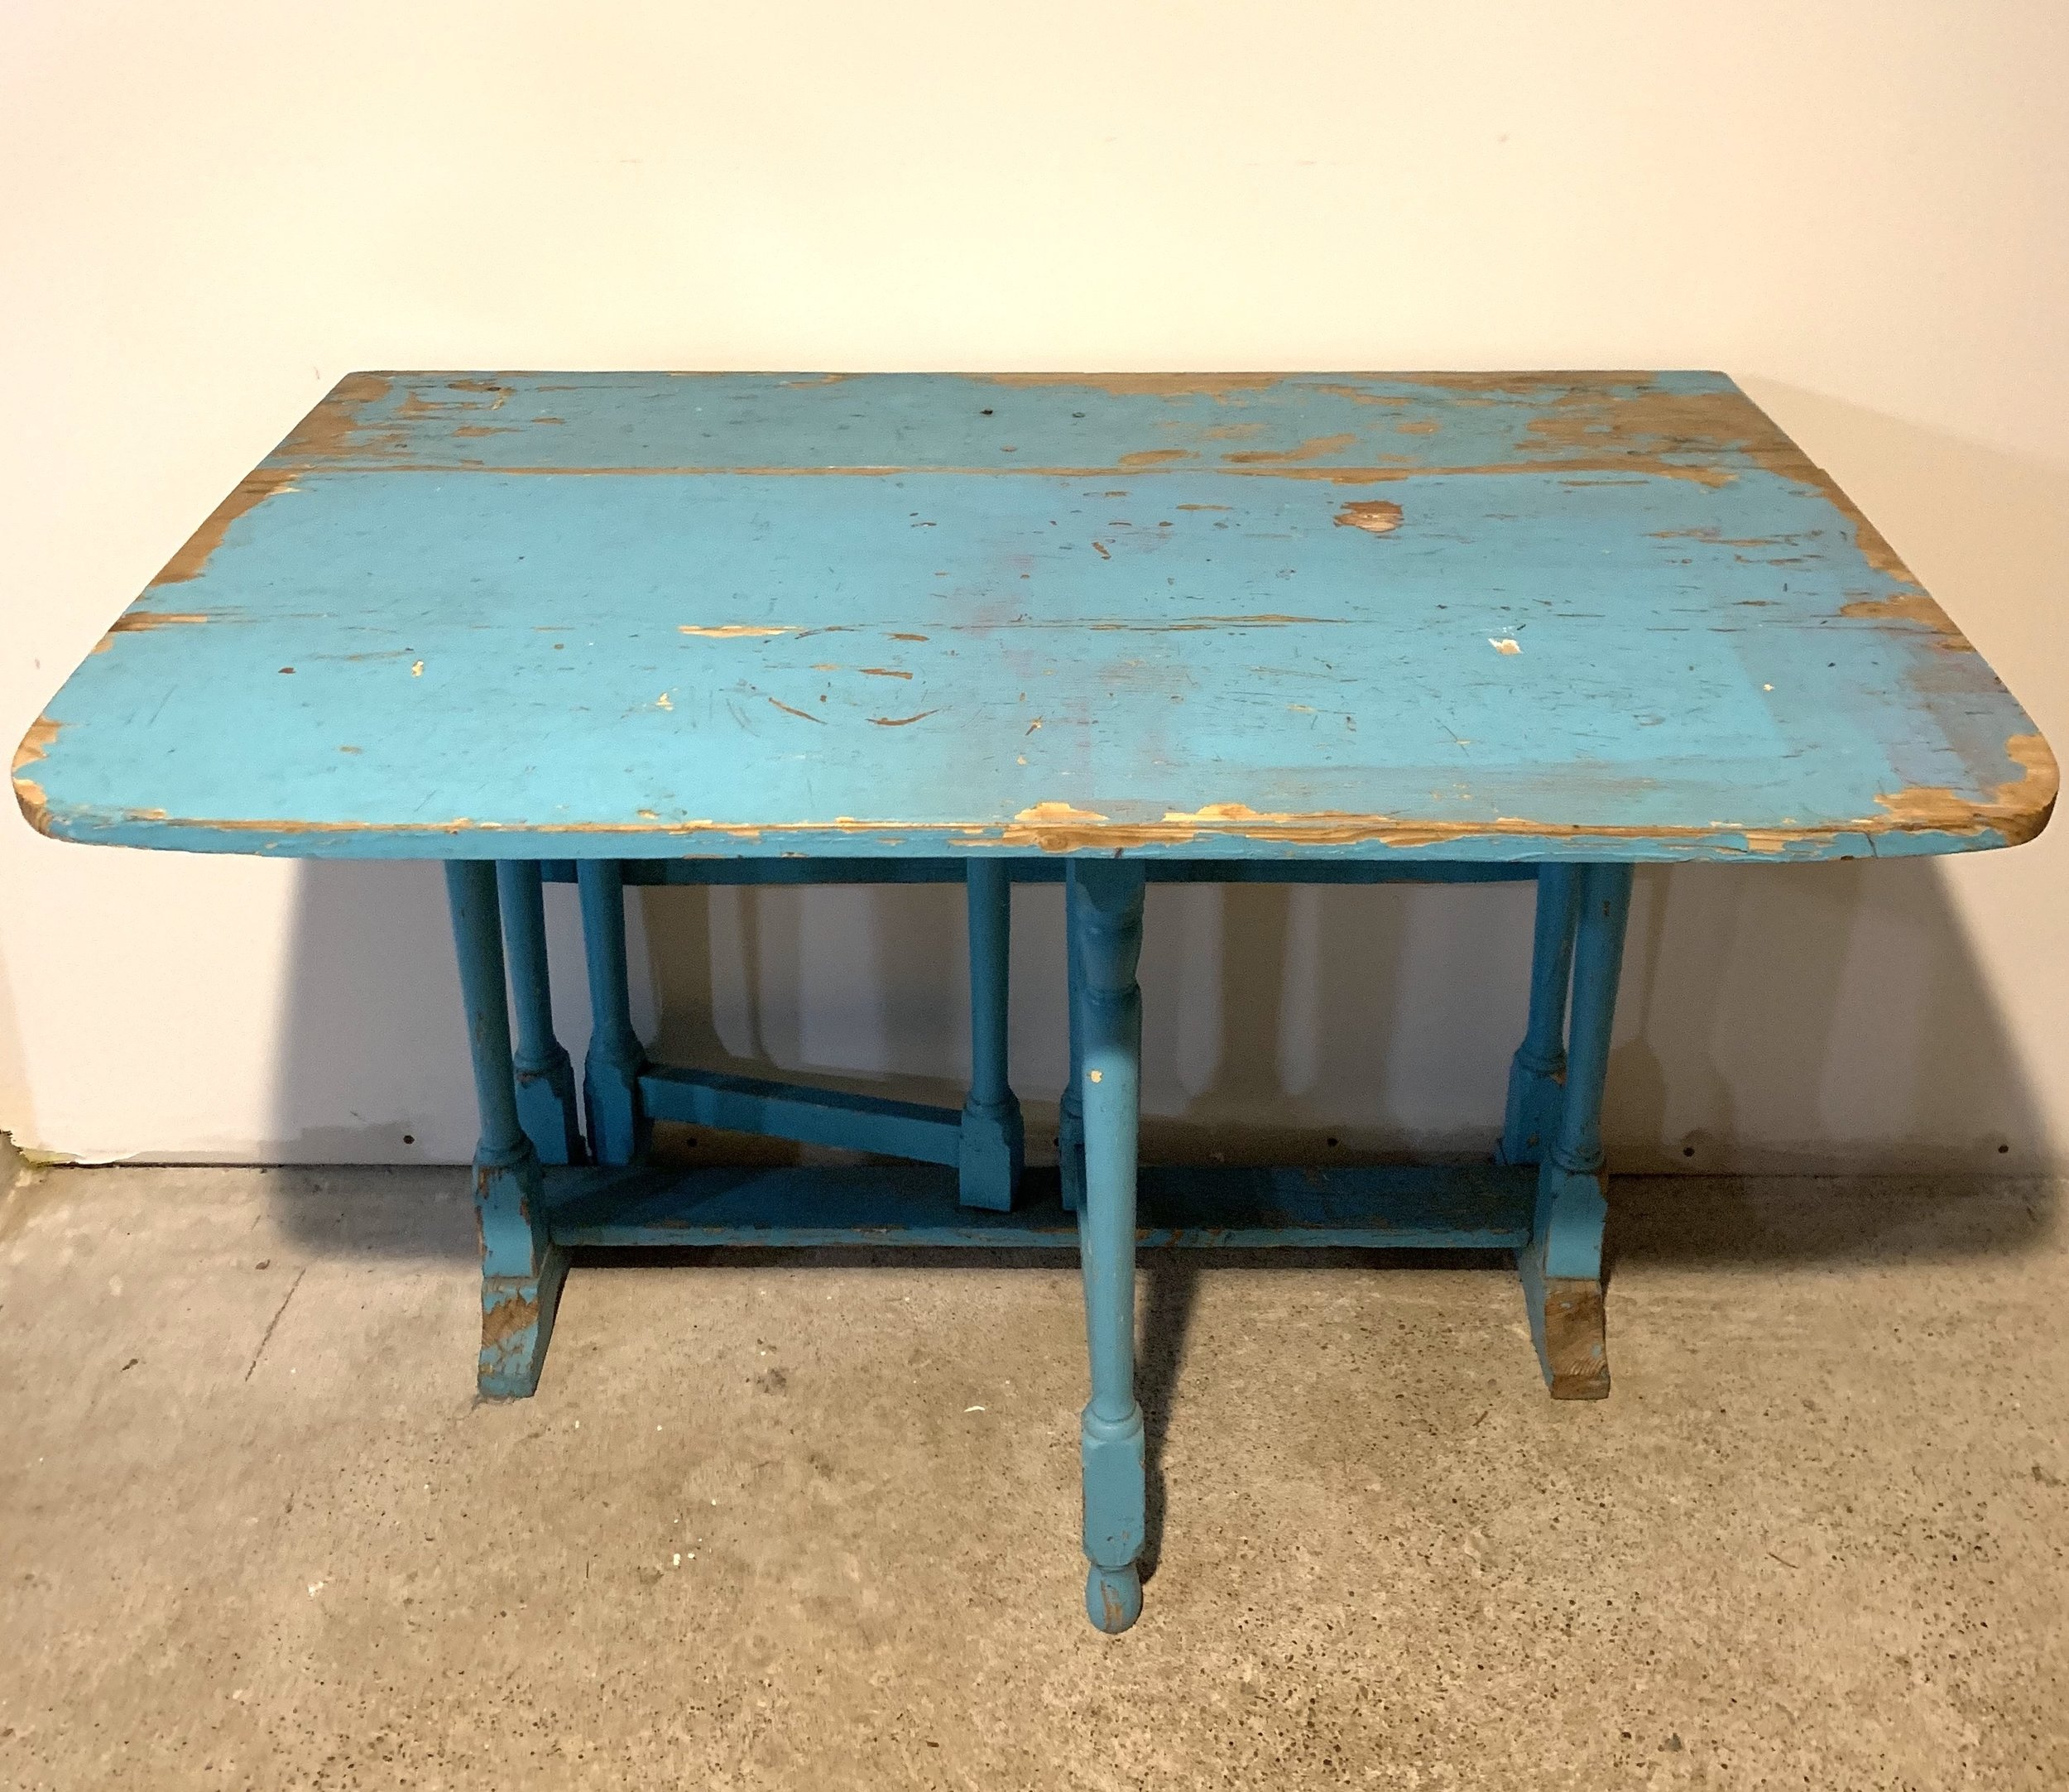 Vintage Blue Drop Leaf Table $45